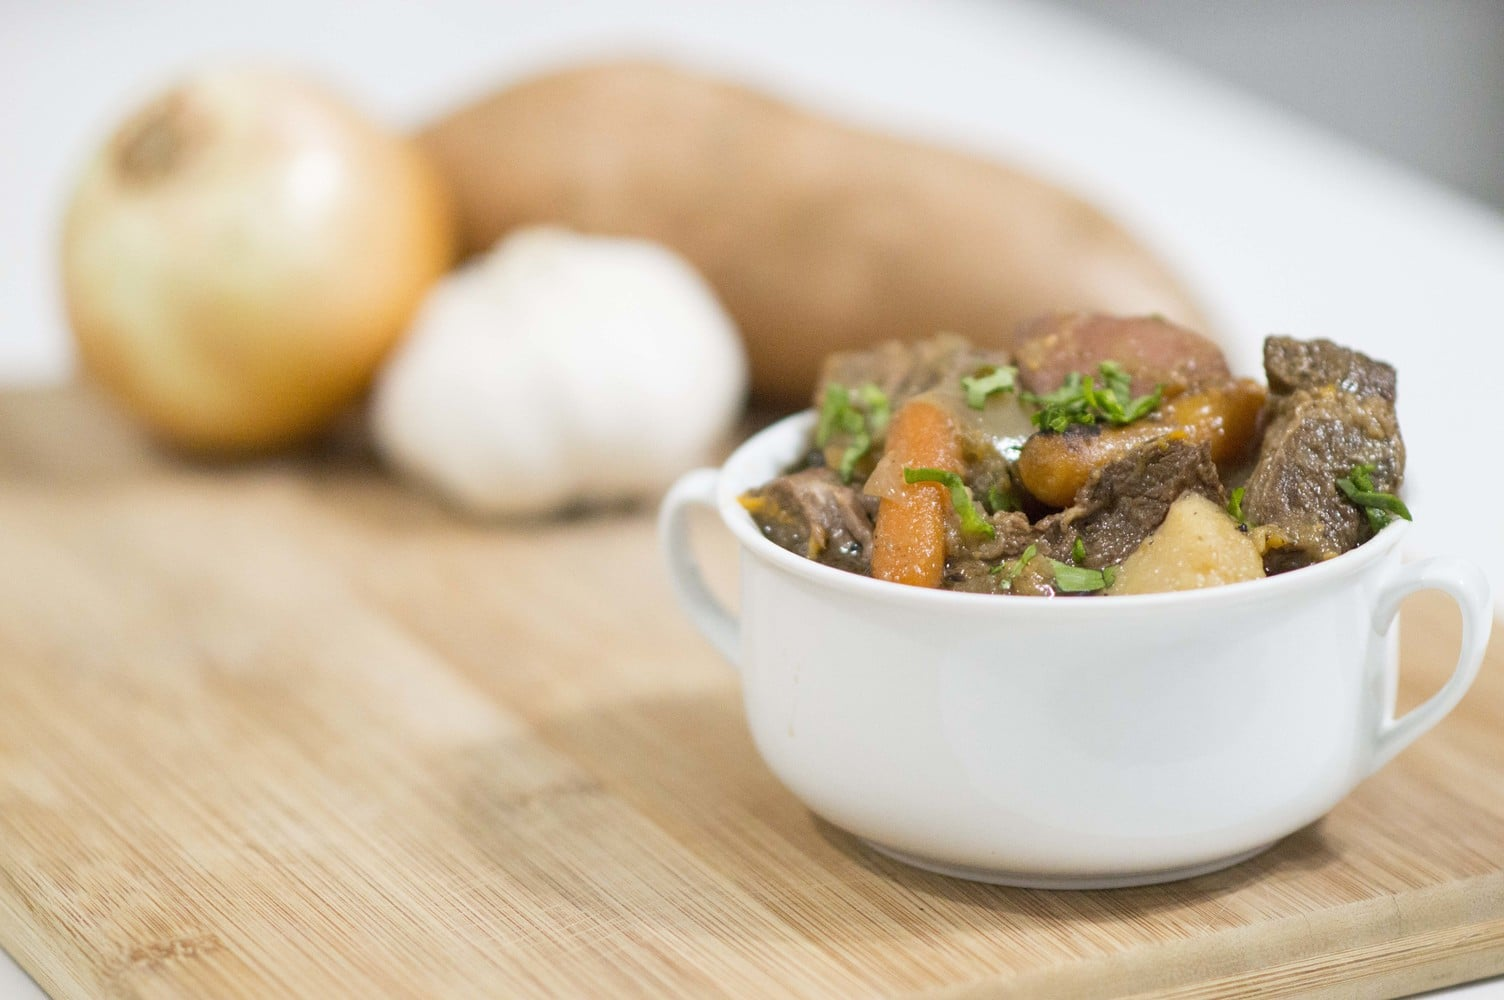 Caramelized Onion Beef Stew dished up and ready to serve